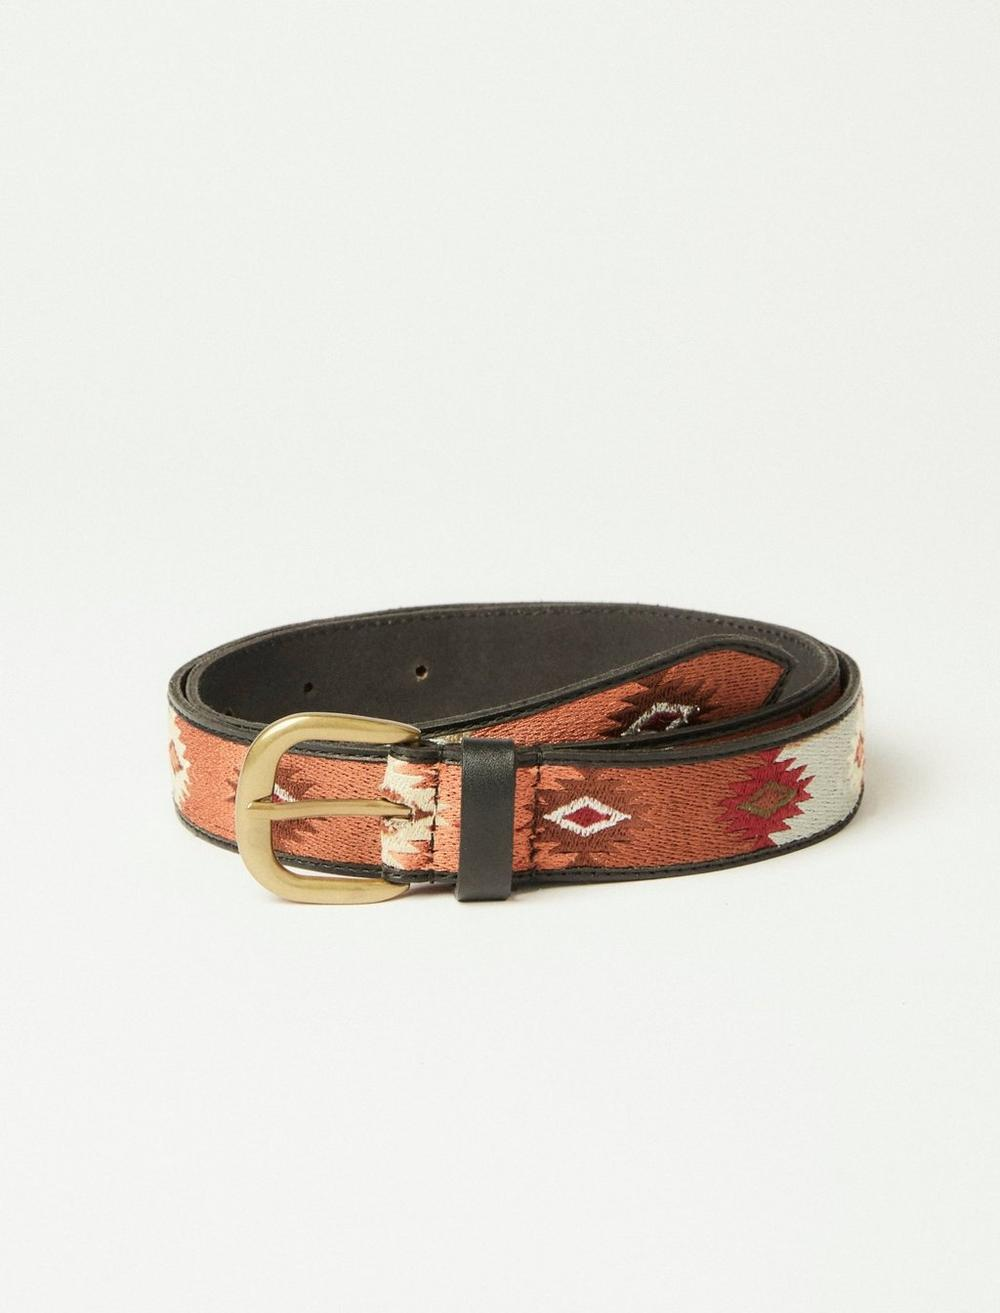 WESTERN EMBROIDERY LEATHER BELT, image 1